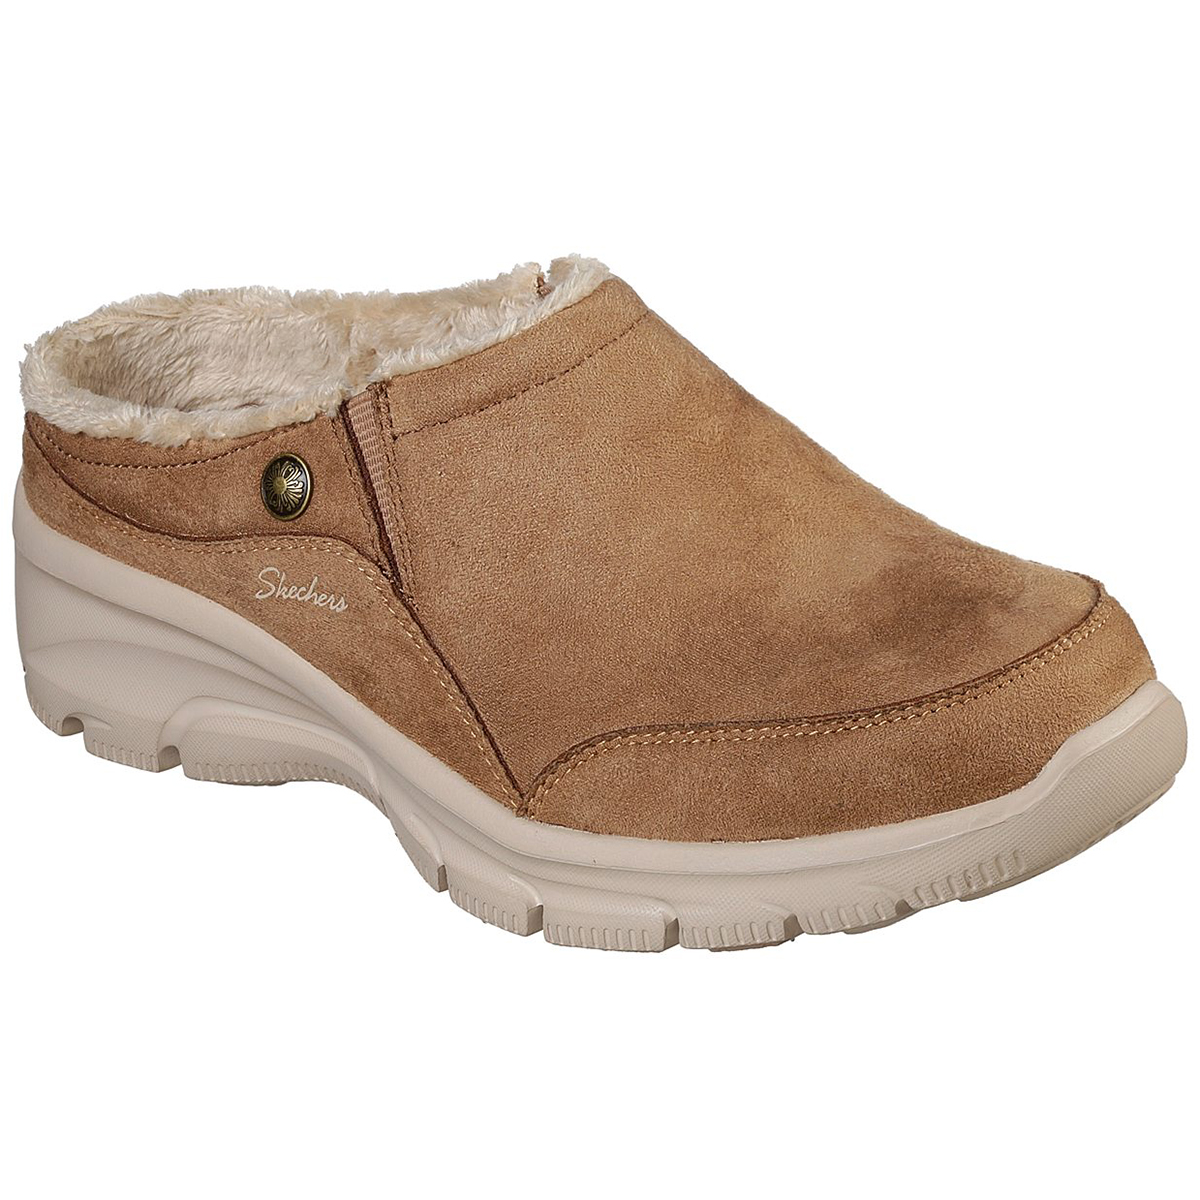 """Skechers Women's Relaxed Fit: Easy Going A """" Latte Mules - Brown, 7"""